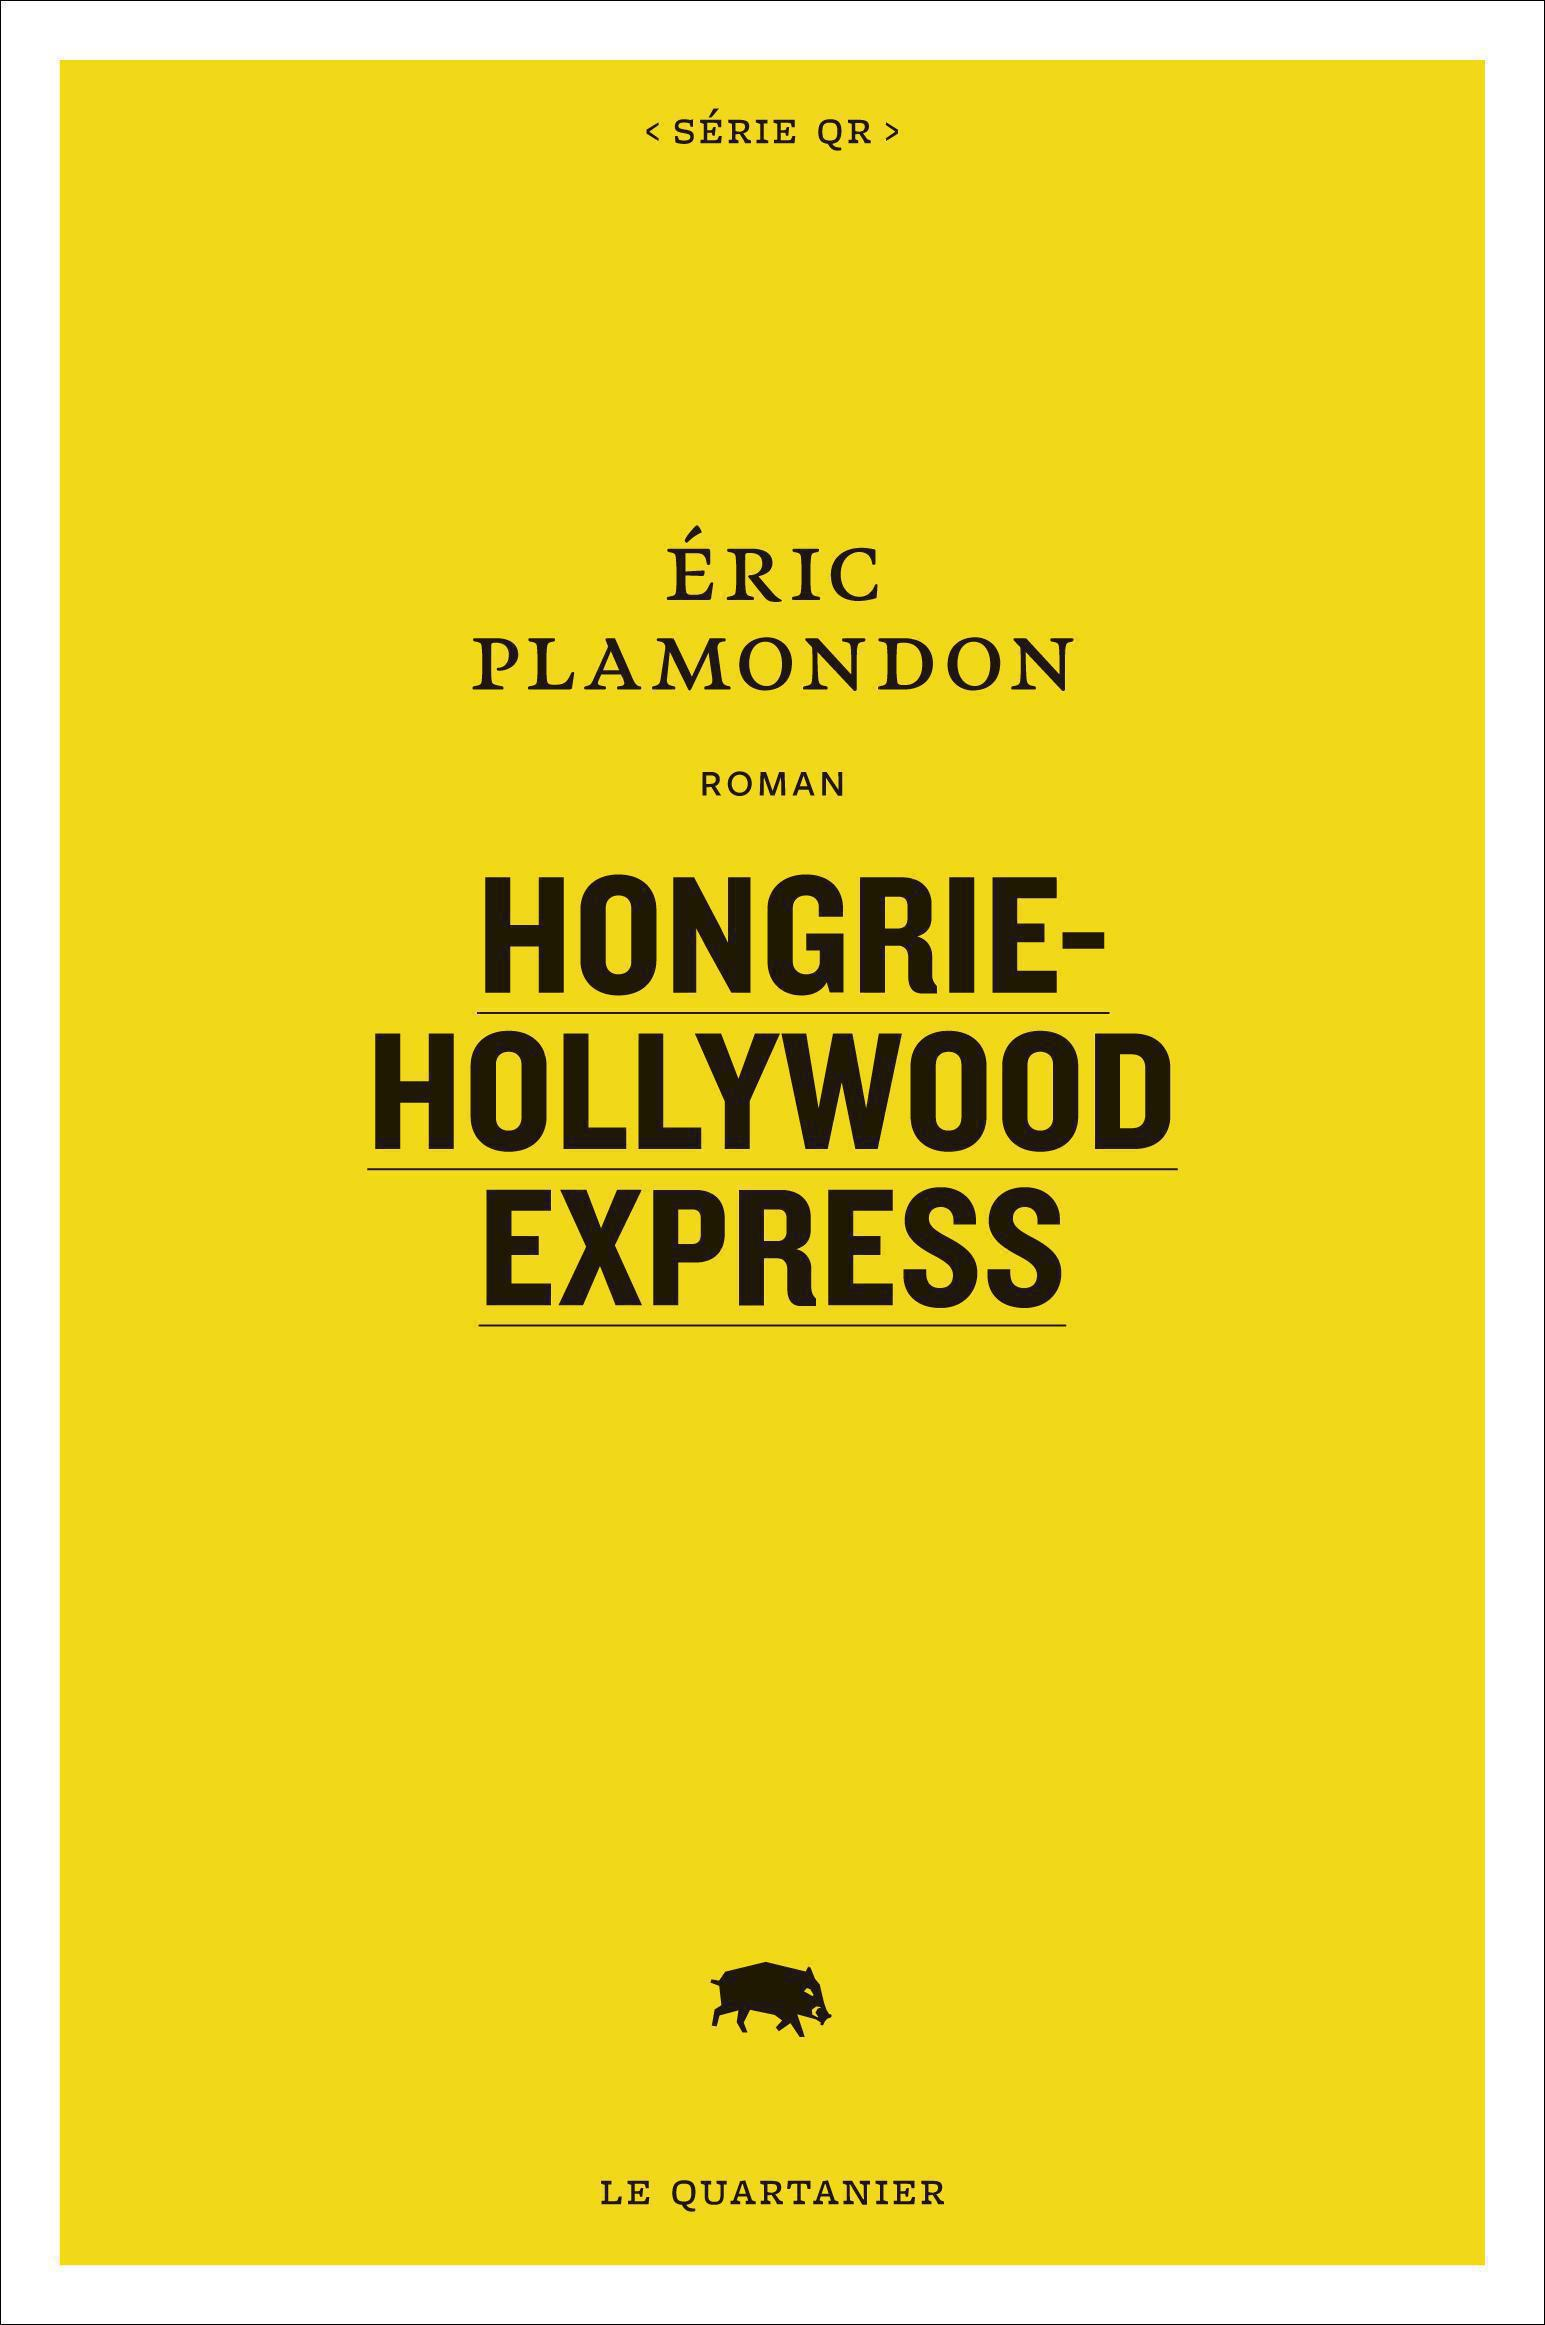 Vignette du livre Hongrie-Hollywood Express - Eric Plamondon